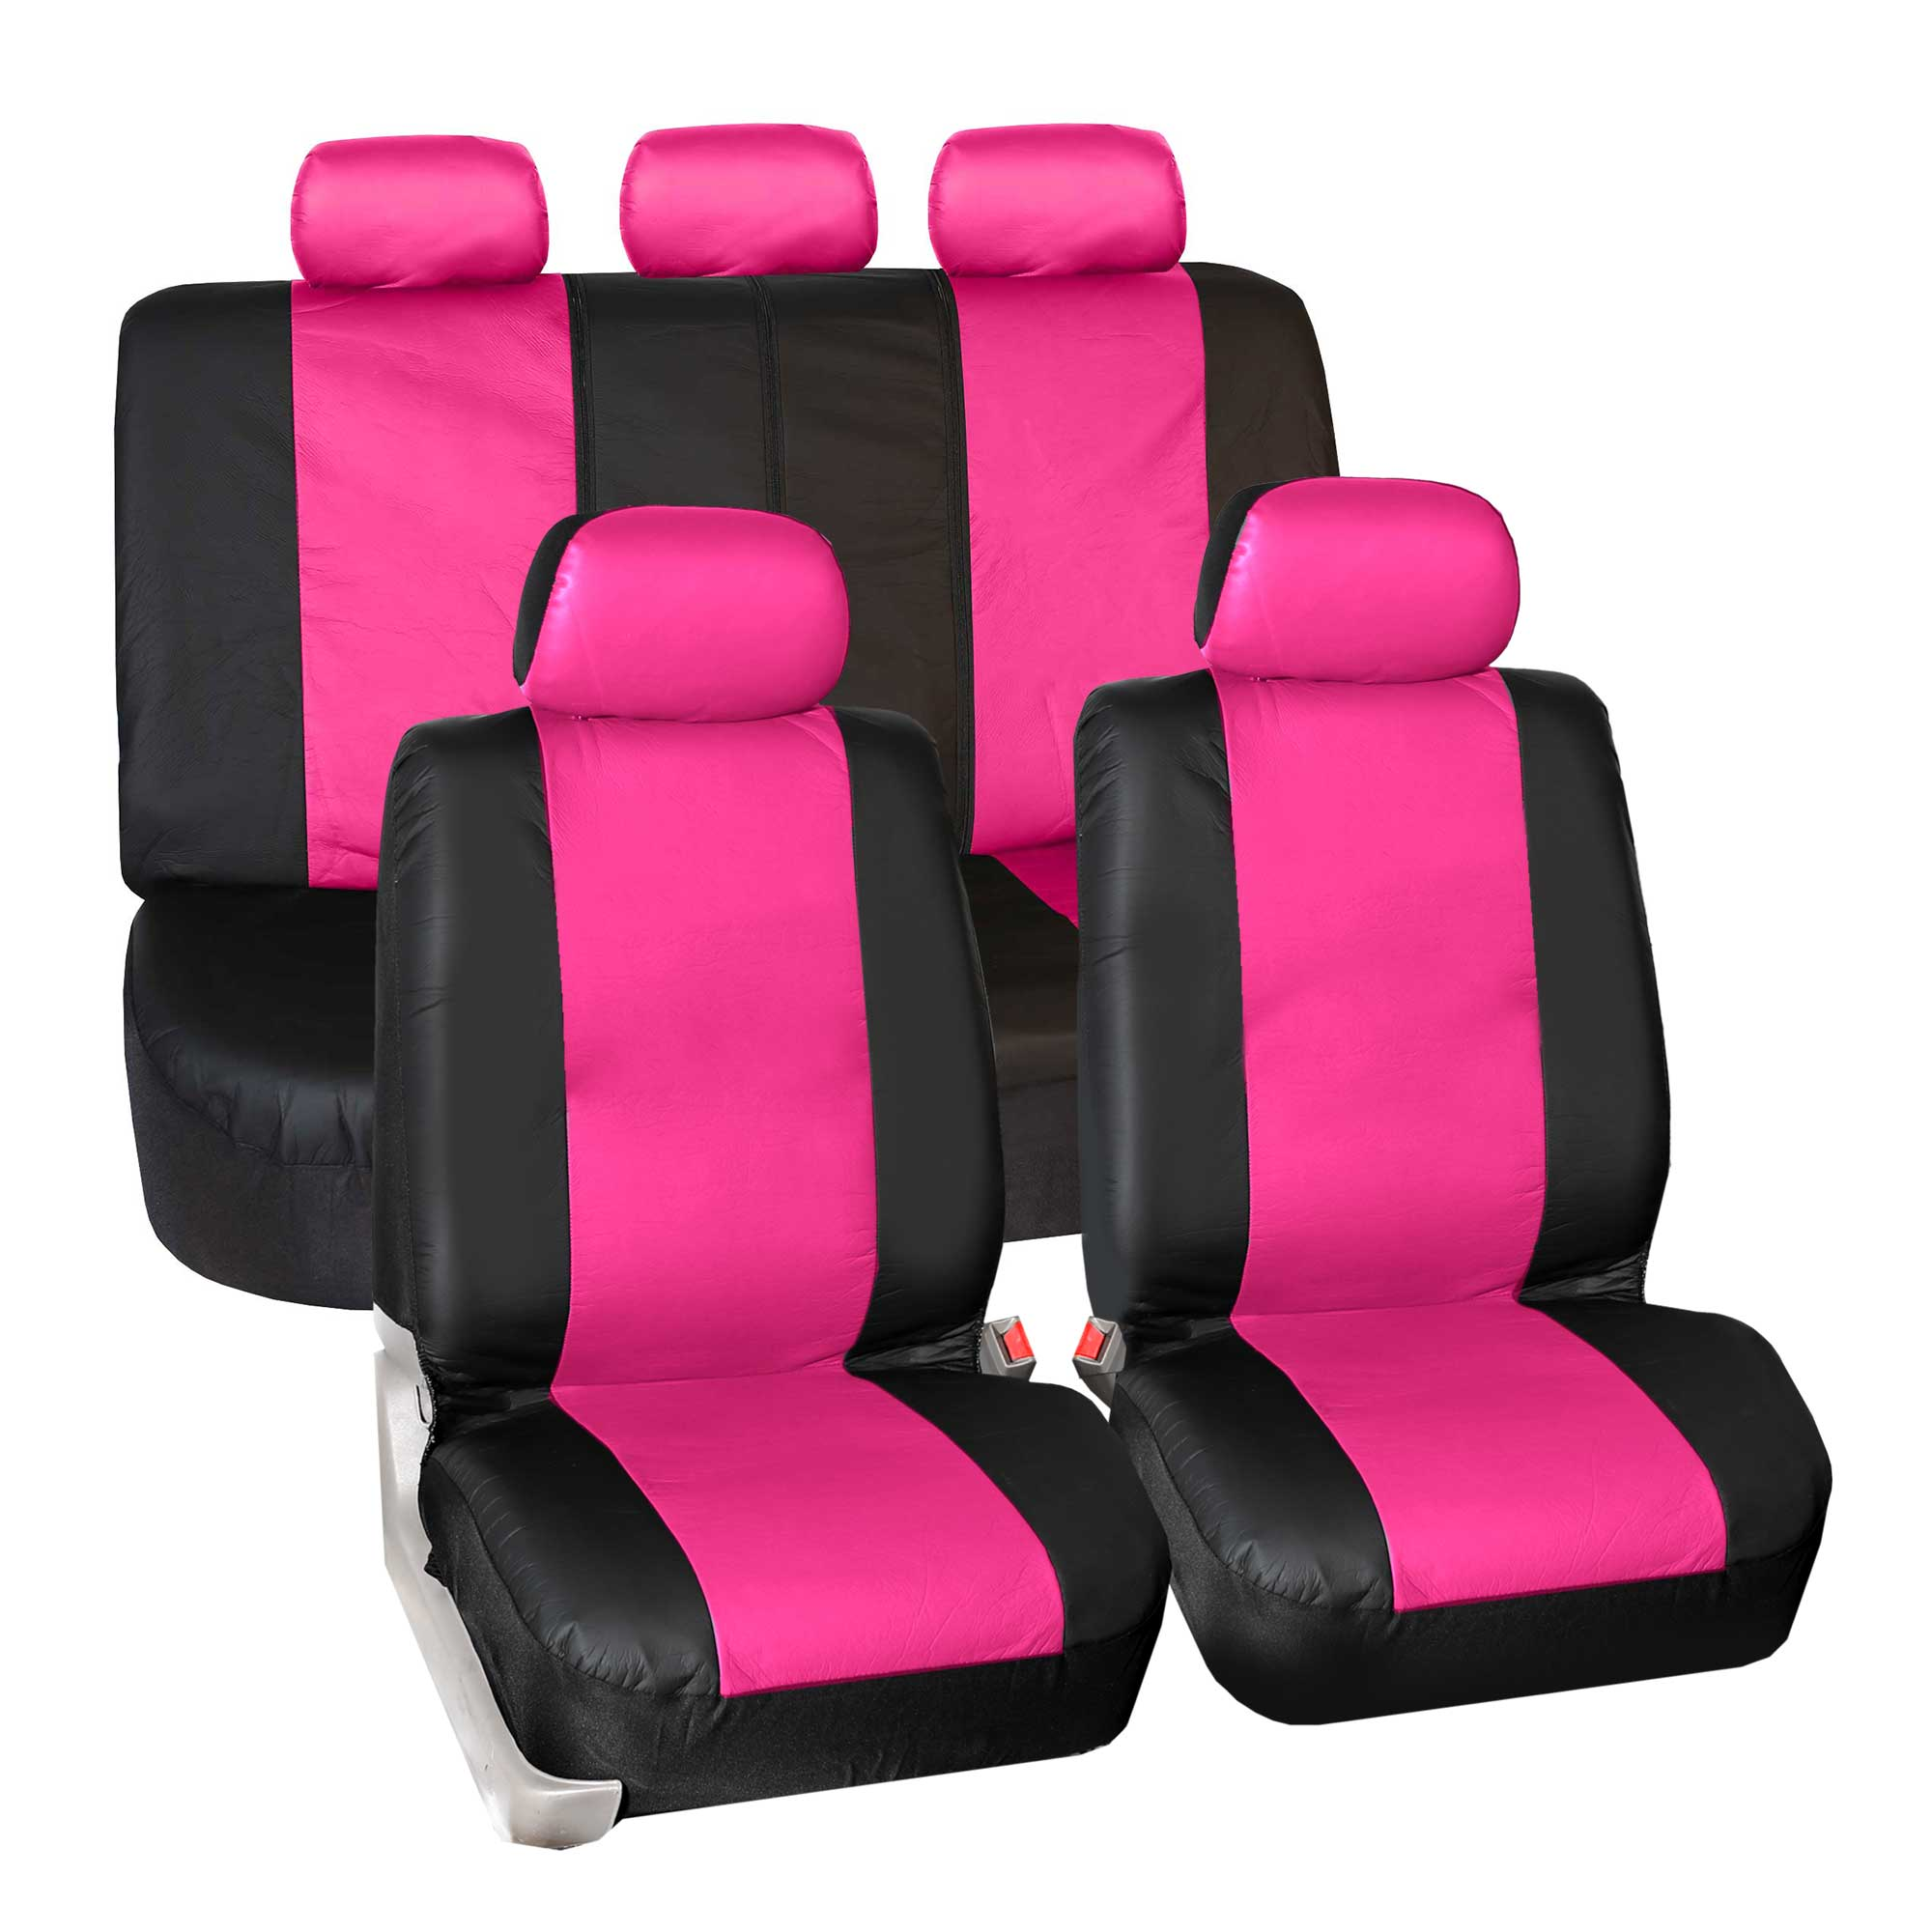 FH Group Synthetic Leather Seat Covers for 5 Headrests Auto, Airbag Compatible and Split Rear Bench, 6 Colors